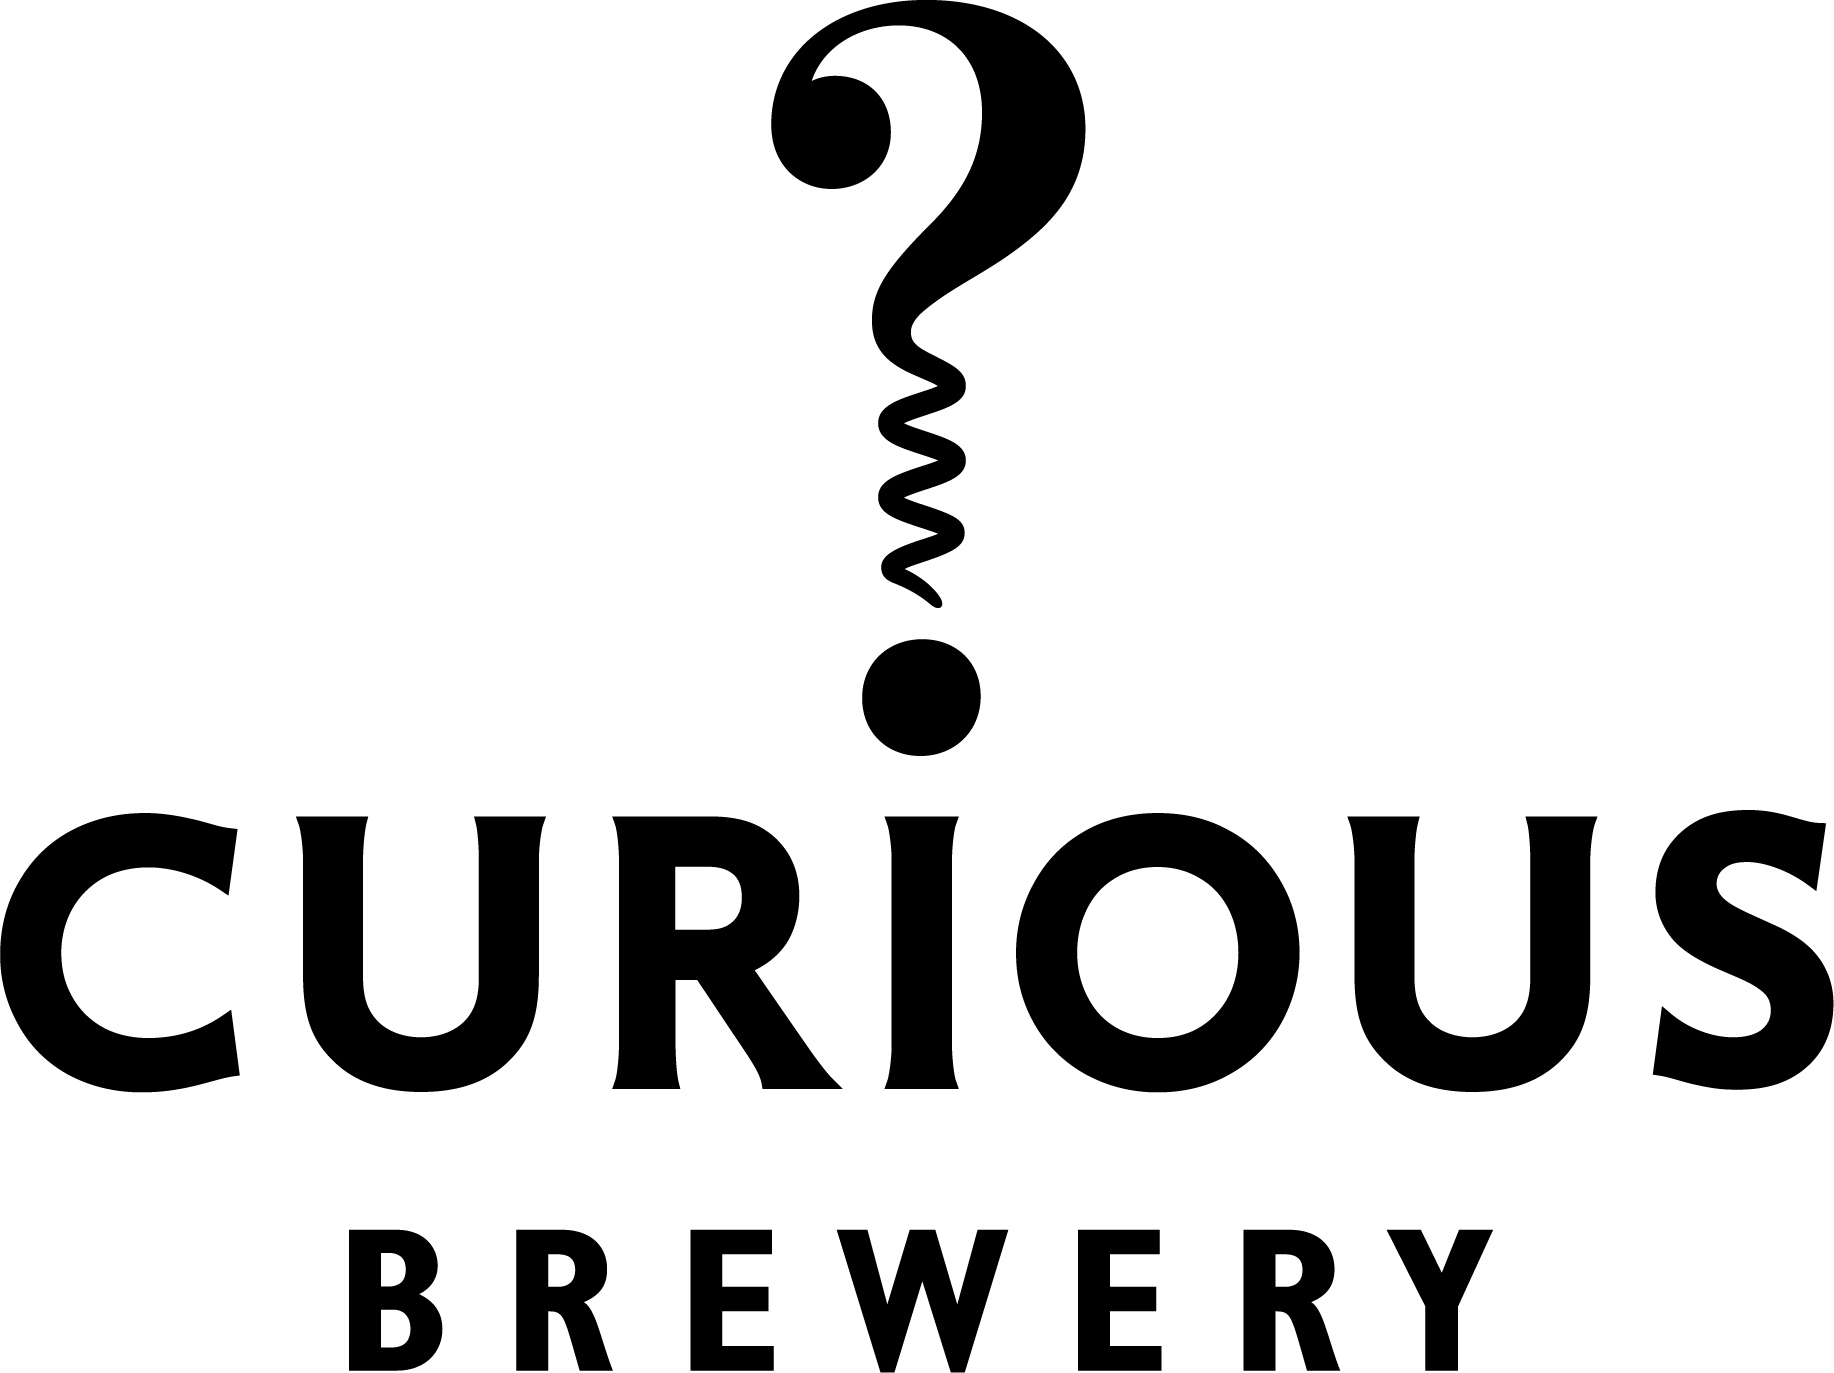 Curious Brewery Black.png